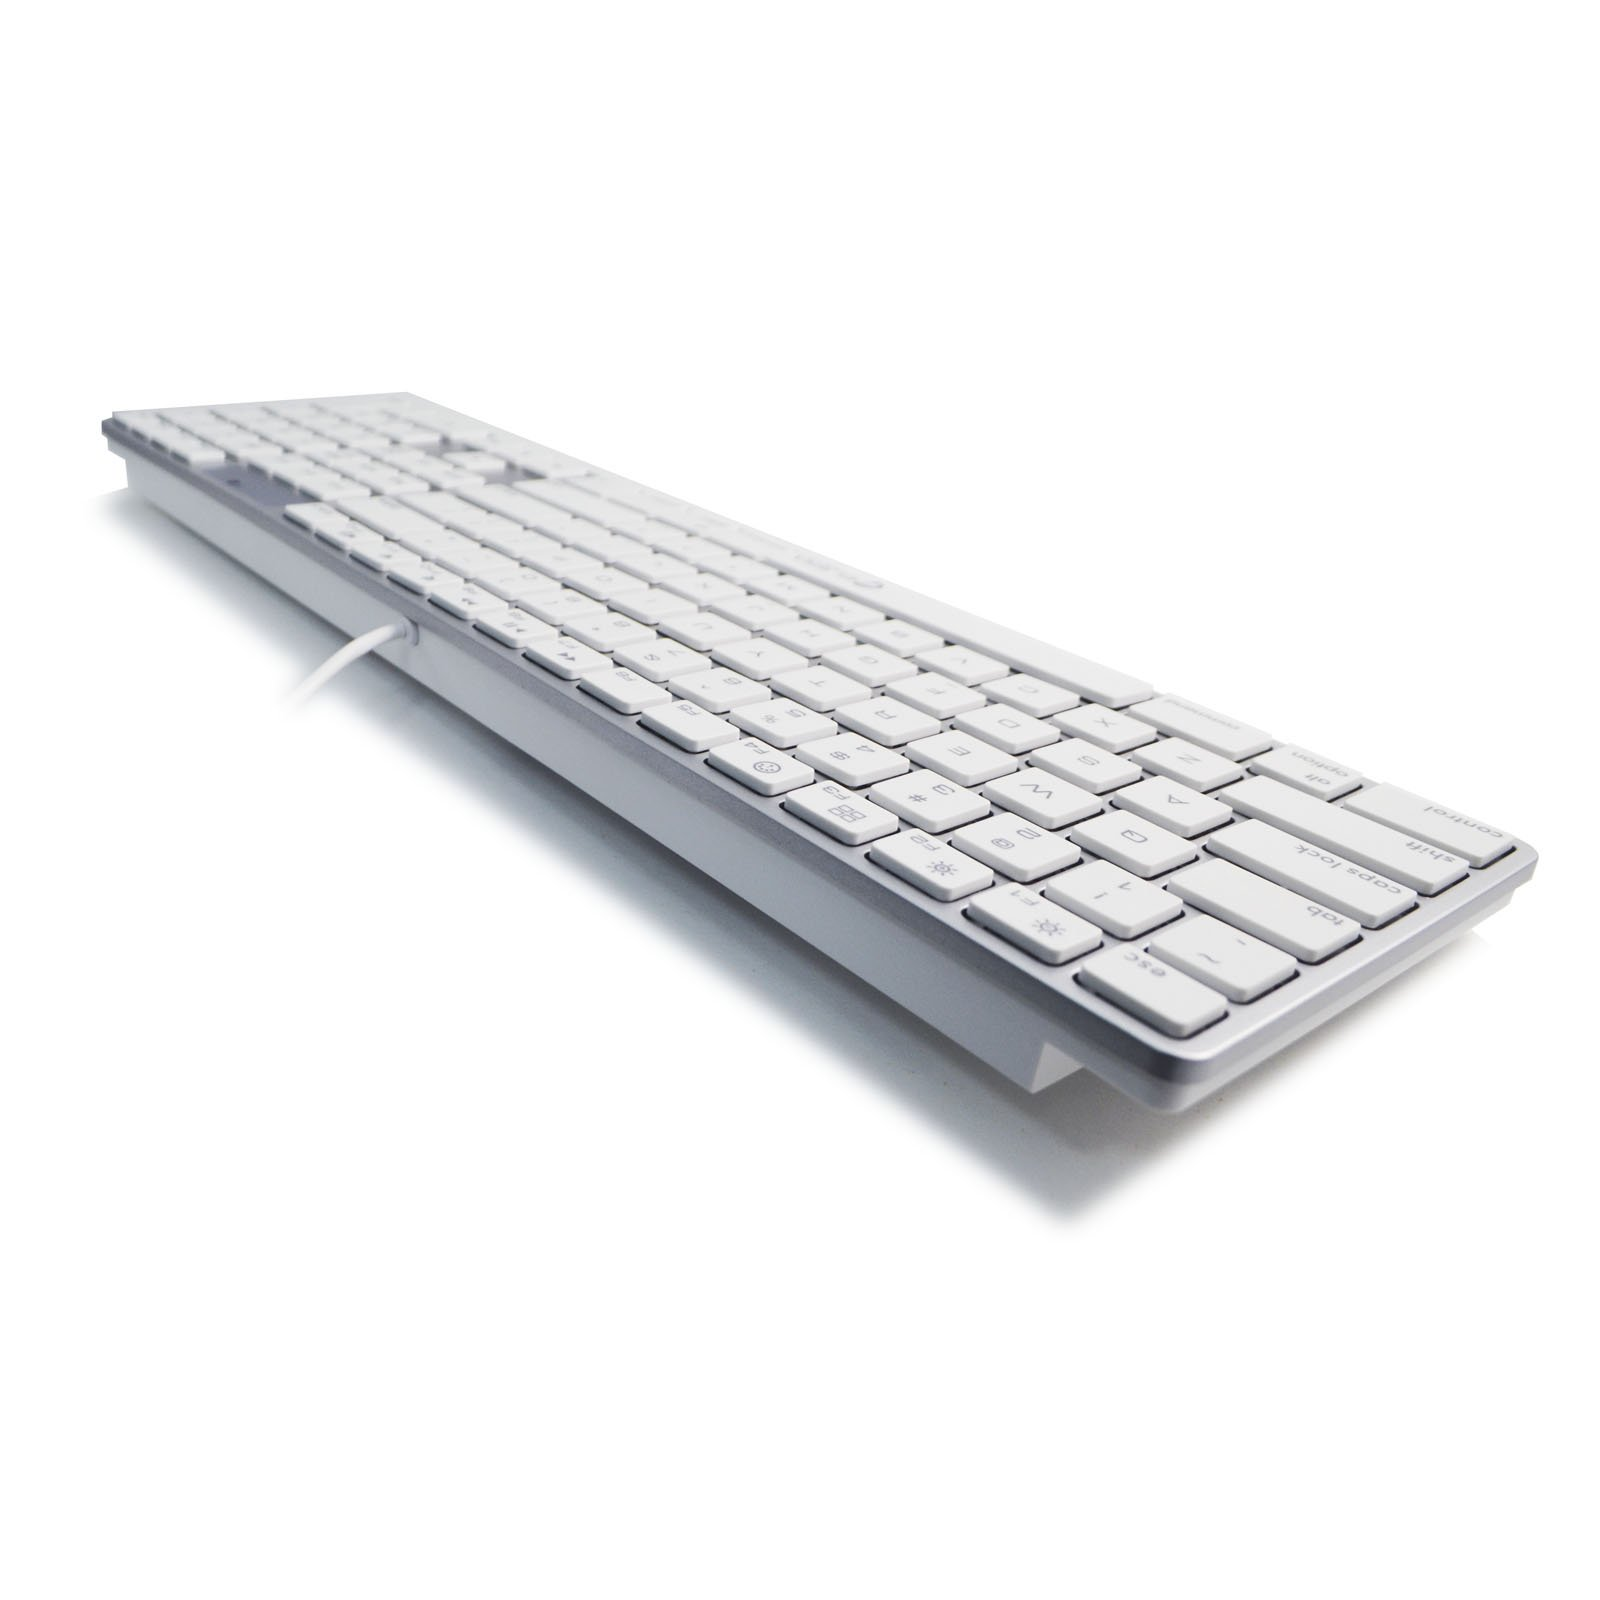 usb wired full size keyboard for mac w numeric keypad kb 801 white 698545366042 ebay. Black Bedroom Furniture Sets. Home Design Ideas